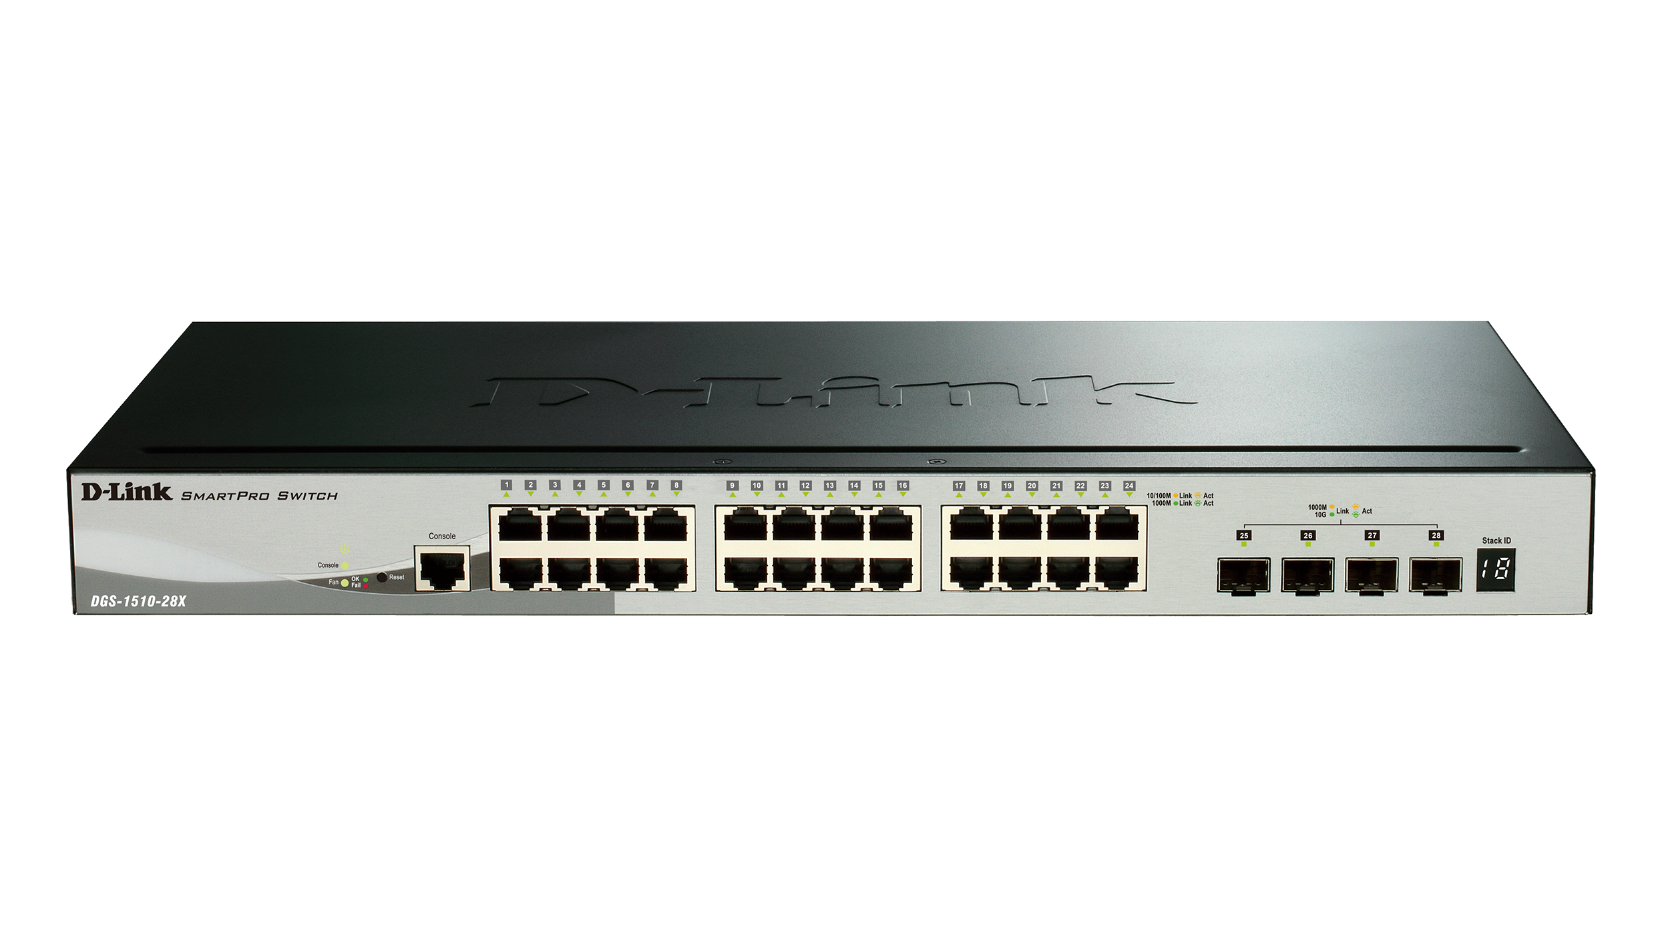 28-Port Gigabit Stackable Smart Managed Switch including 4 10G SFP+